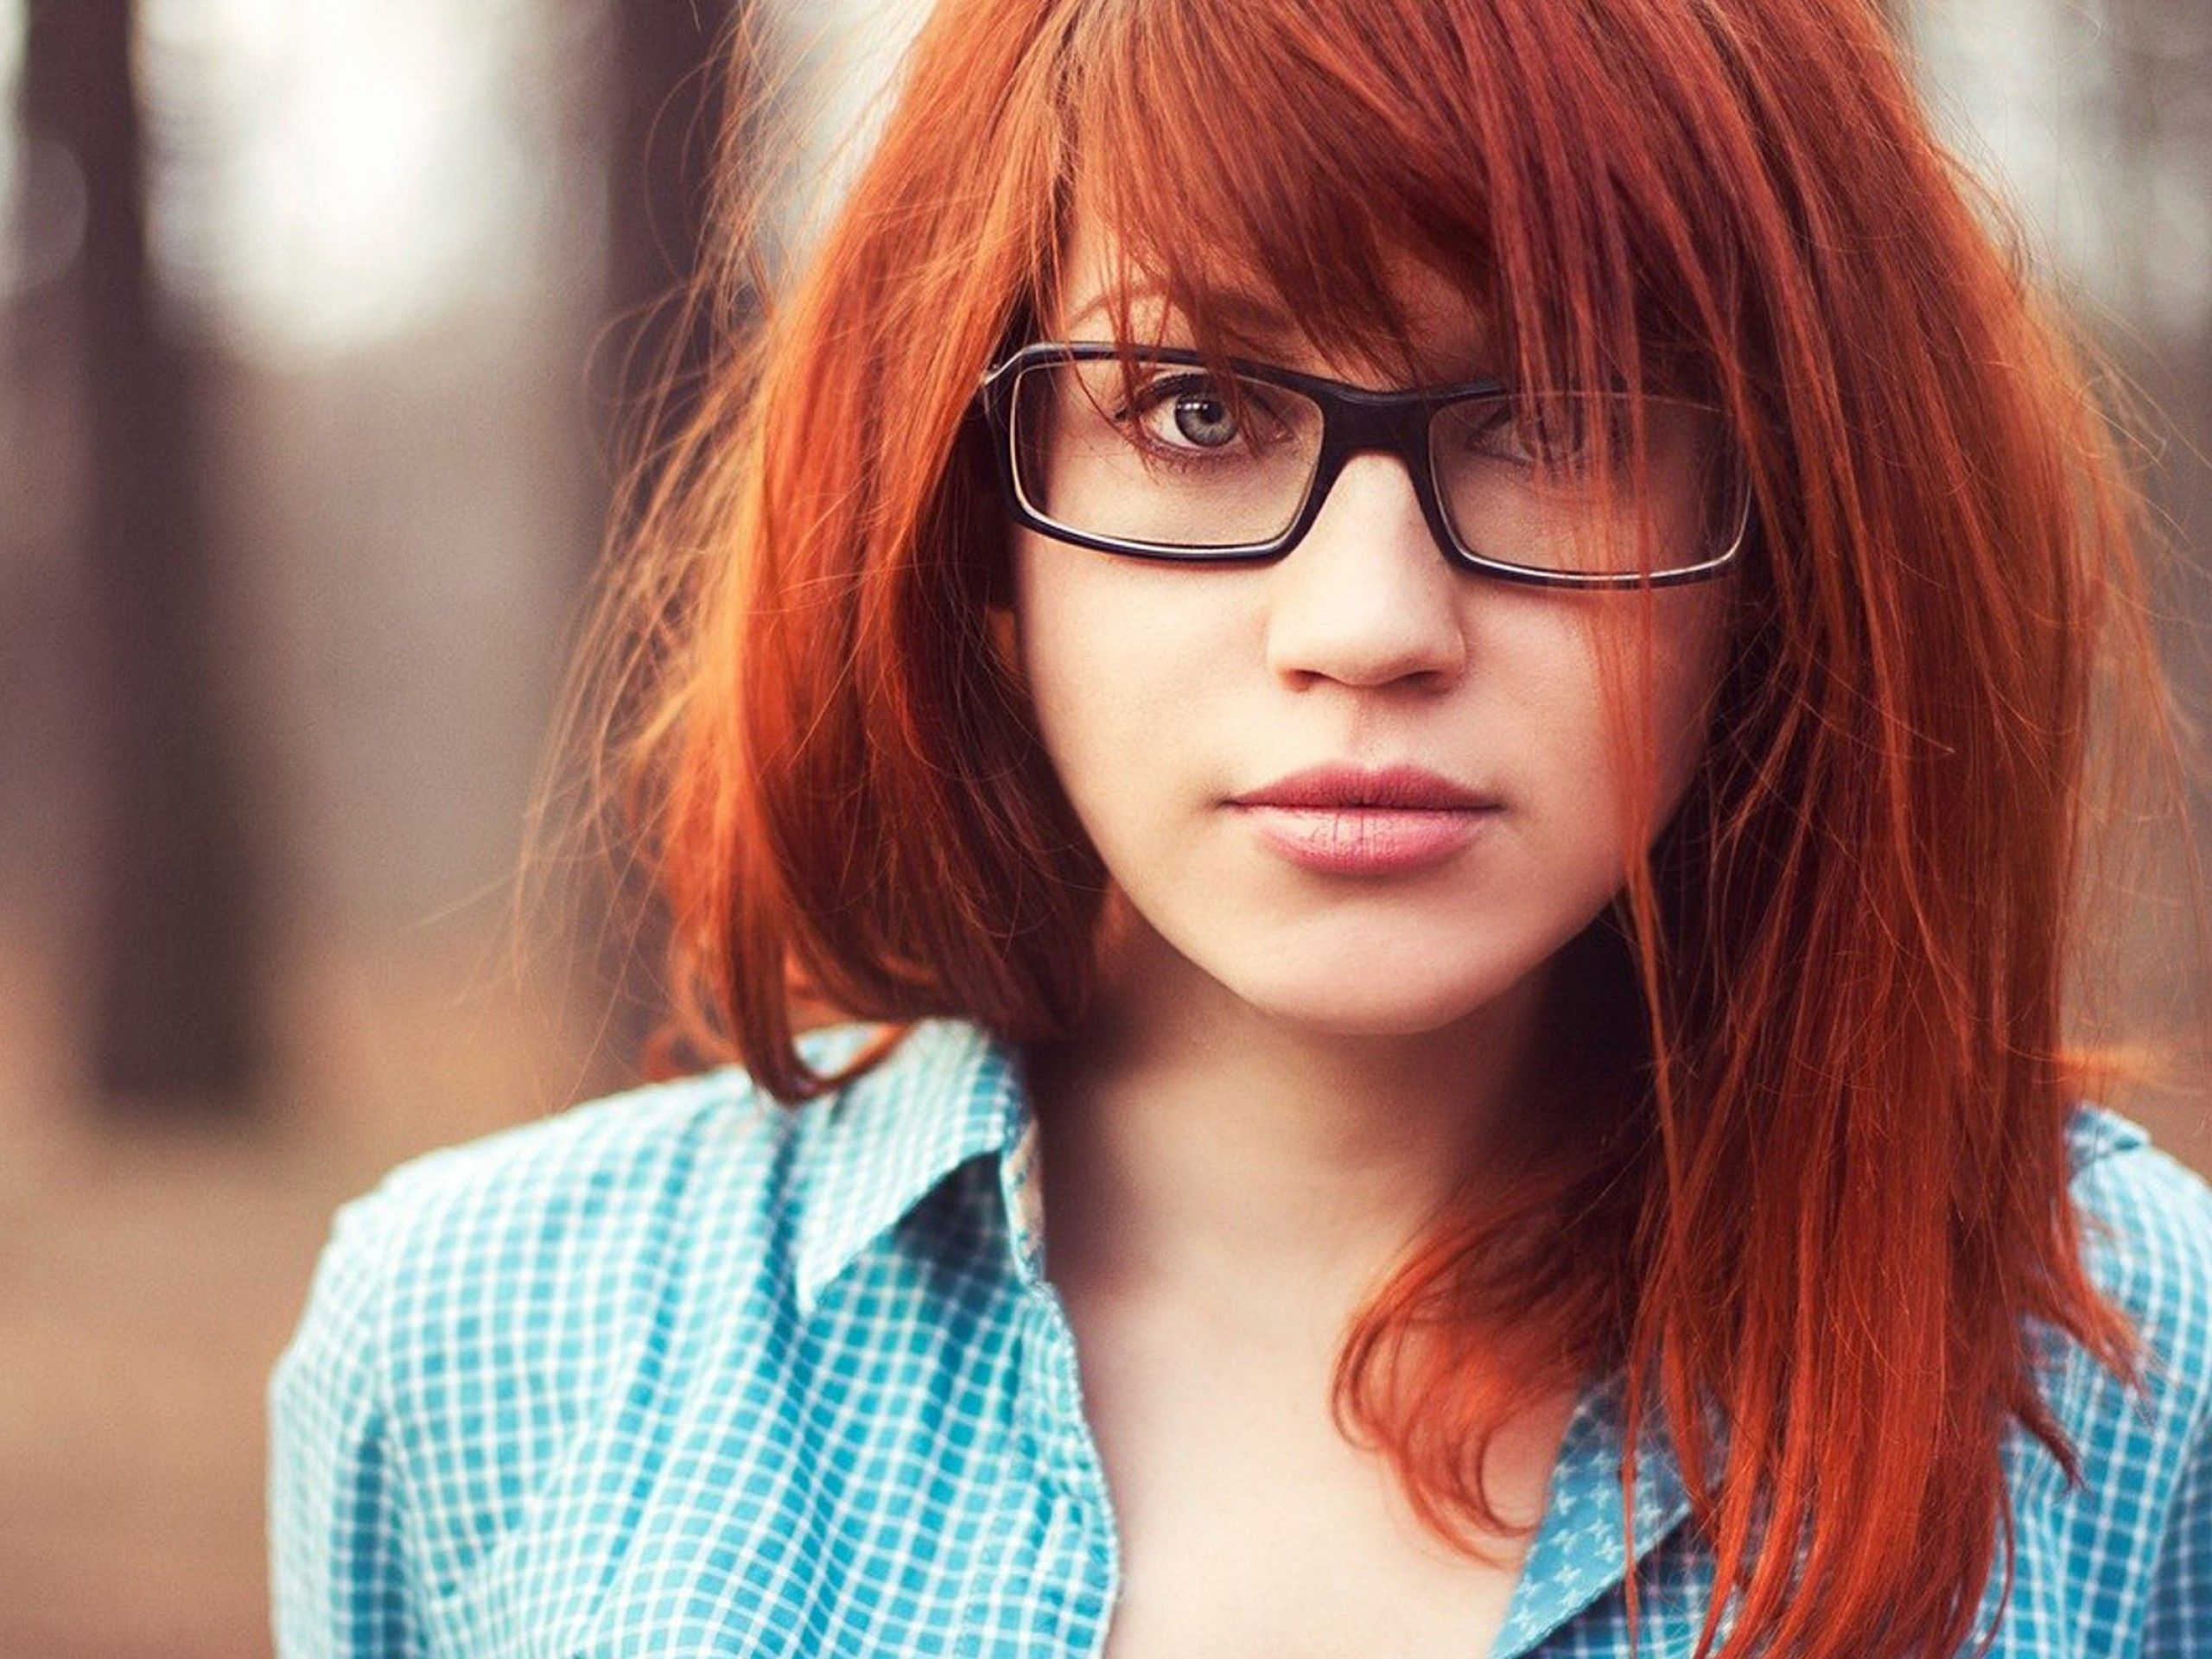 nerd red | dem faces! | girls with glasses, red hair color